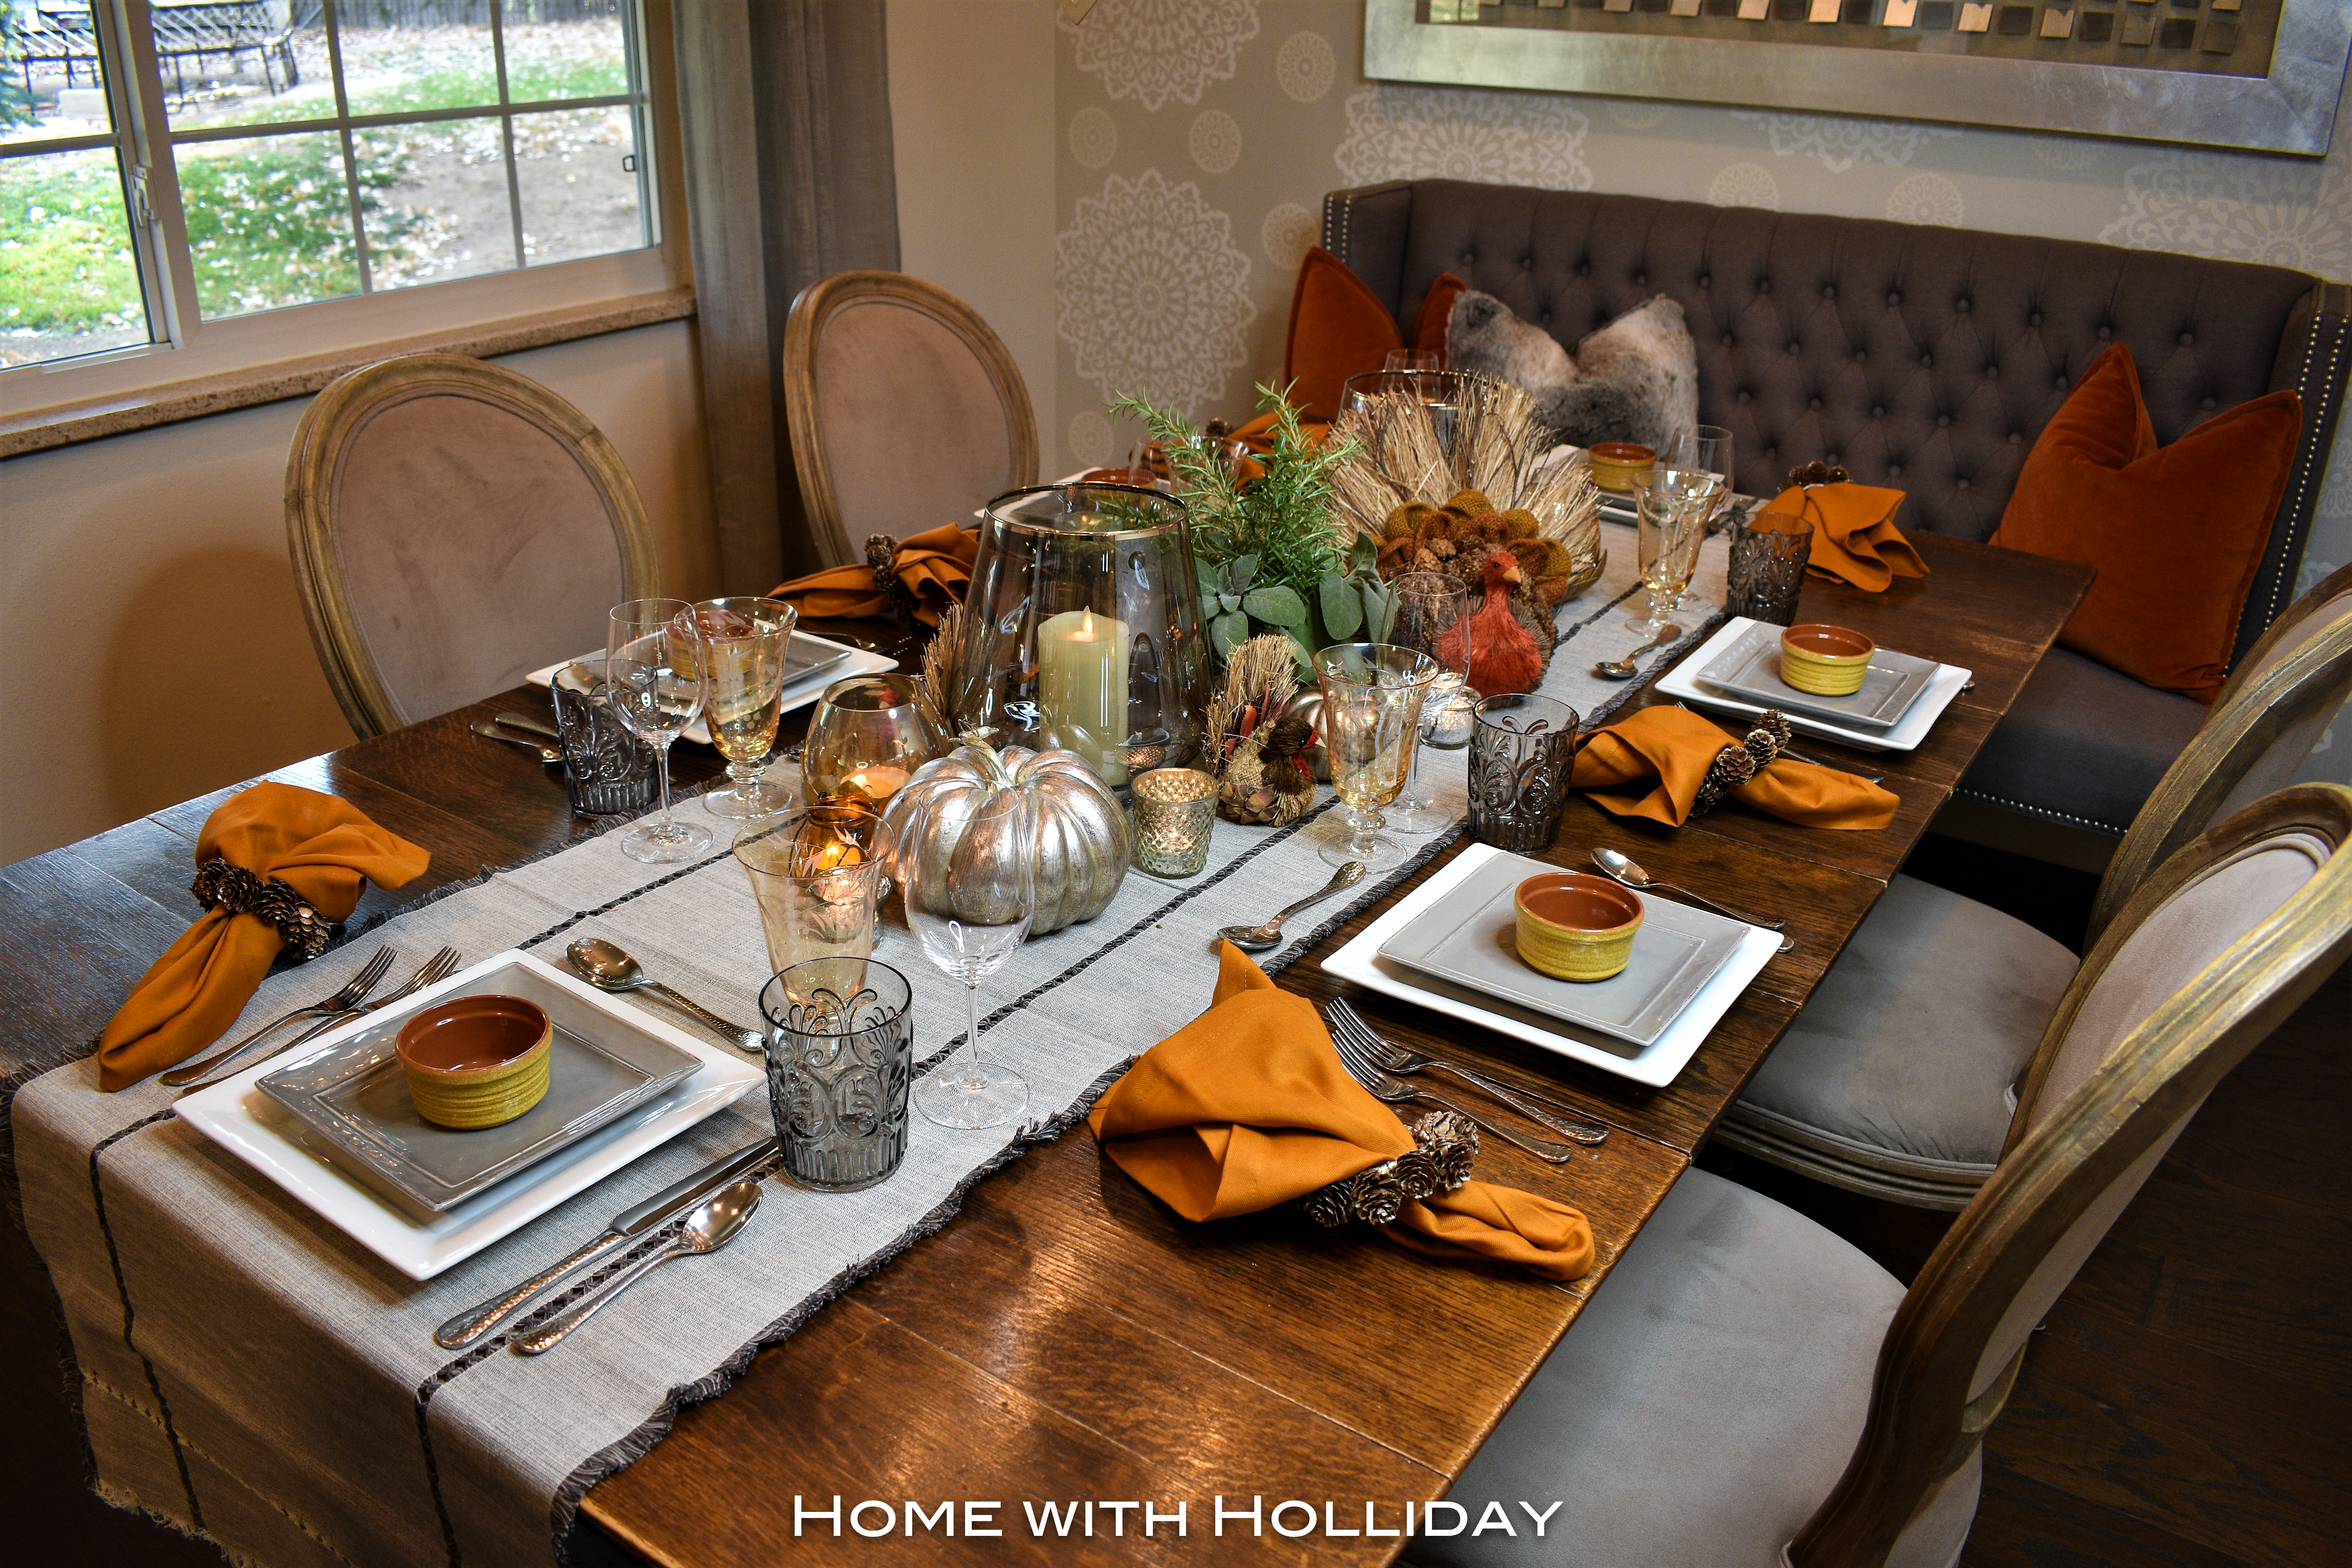 Best Fall Decor for Table Settings on Amazon 1